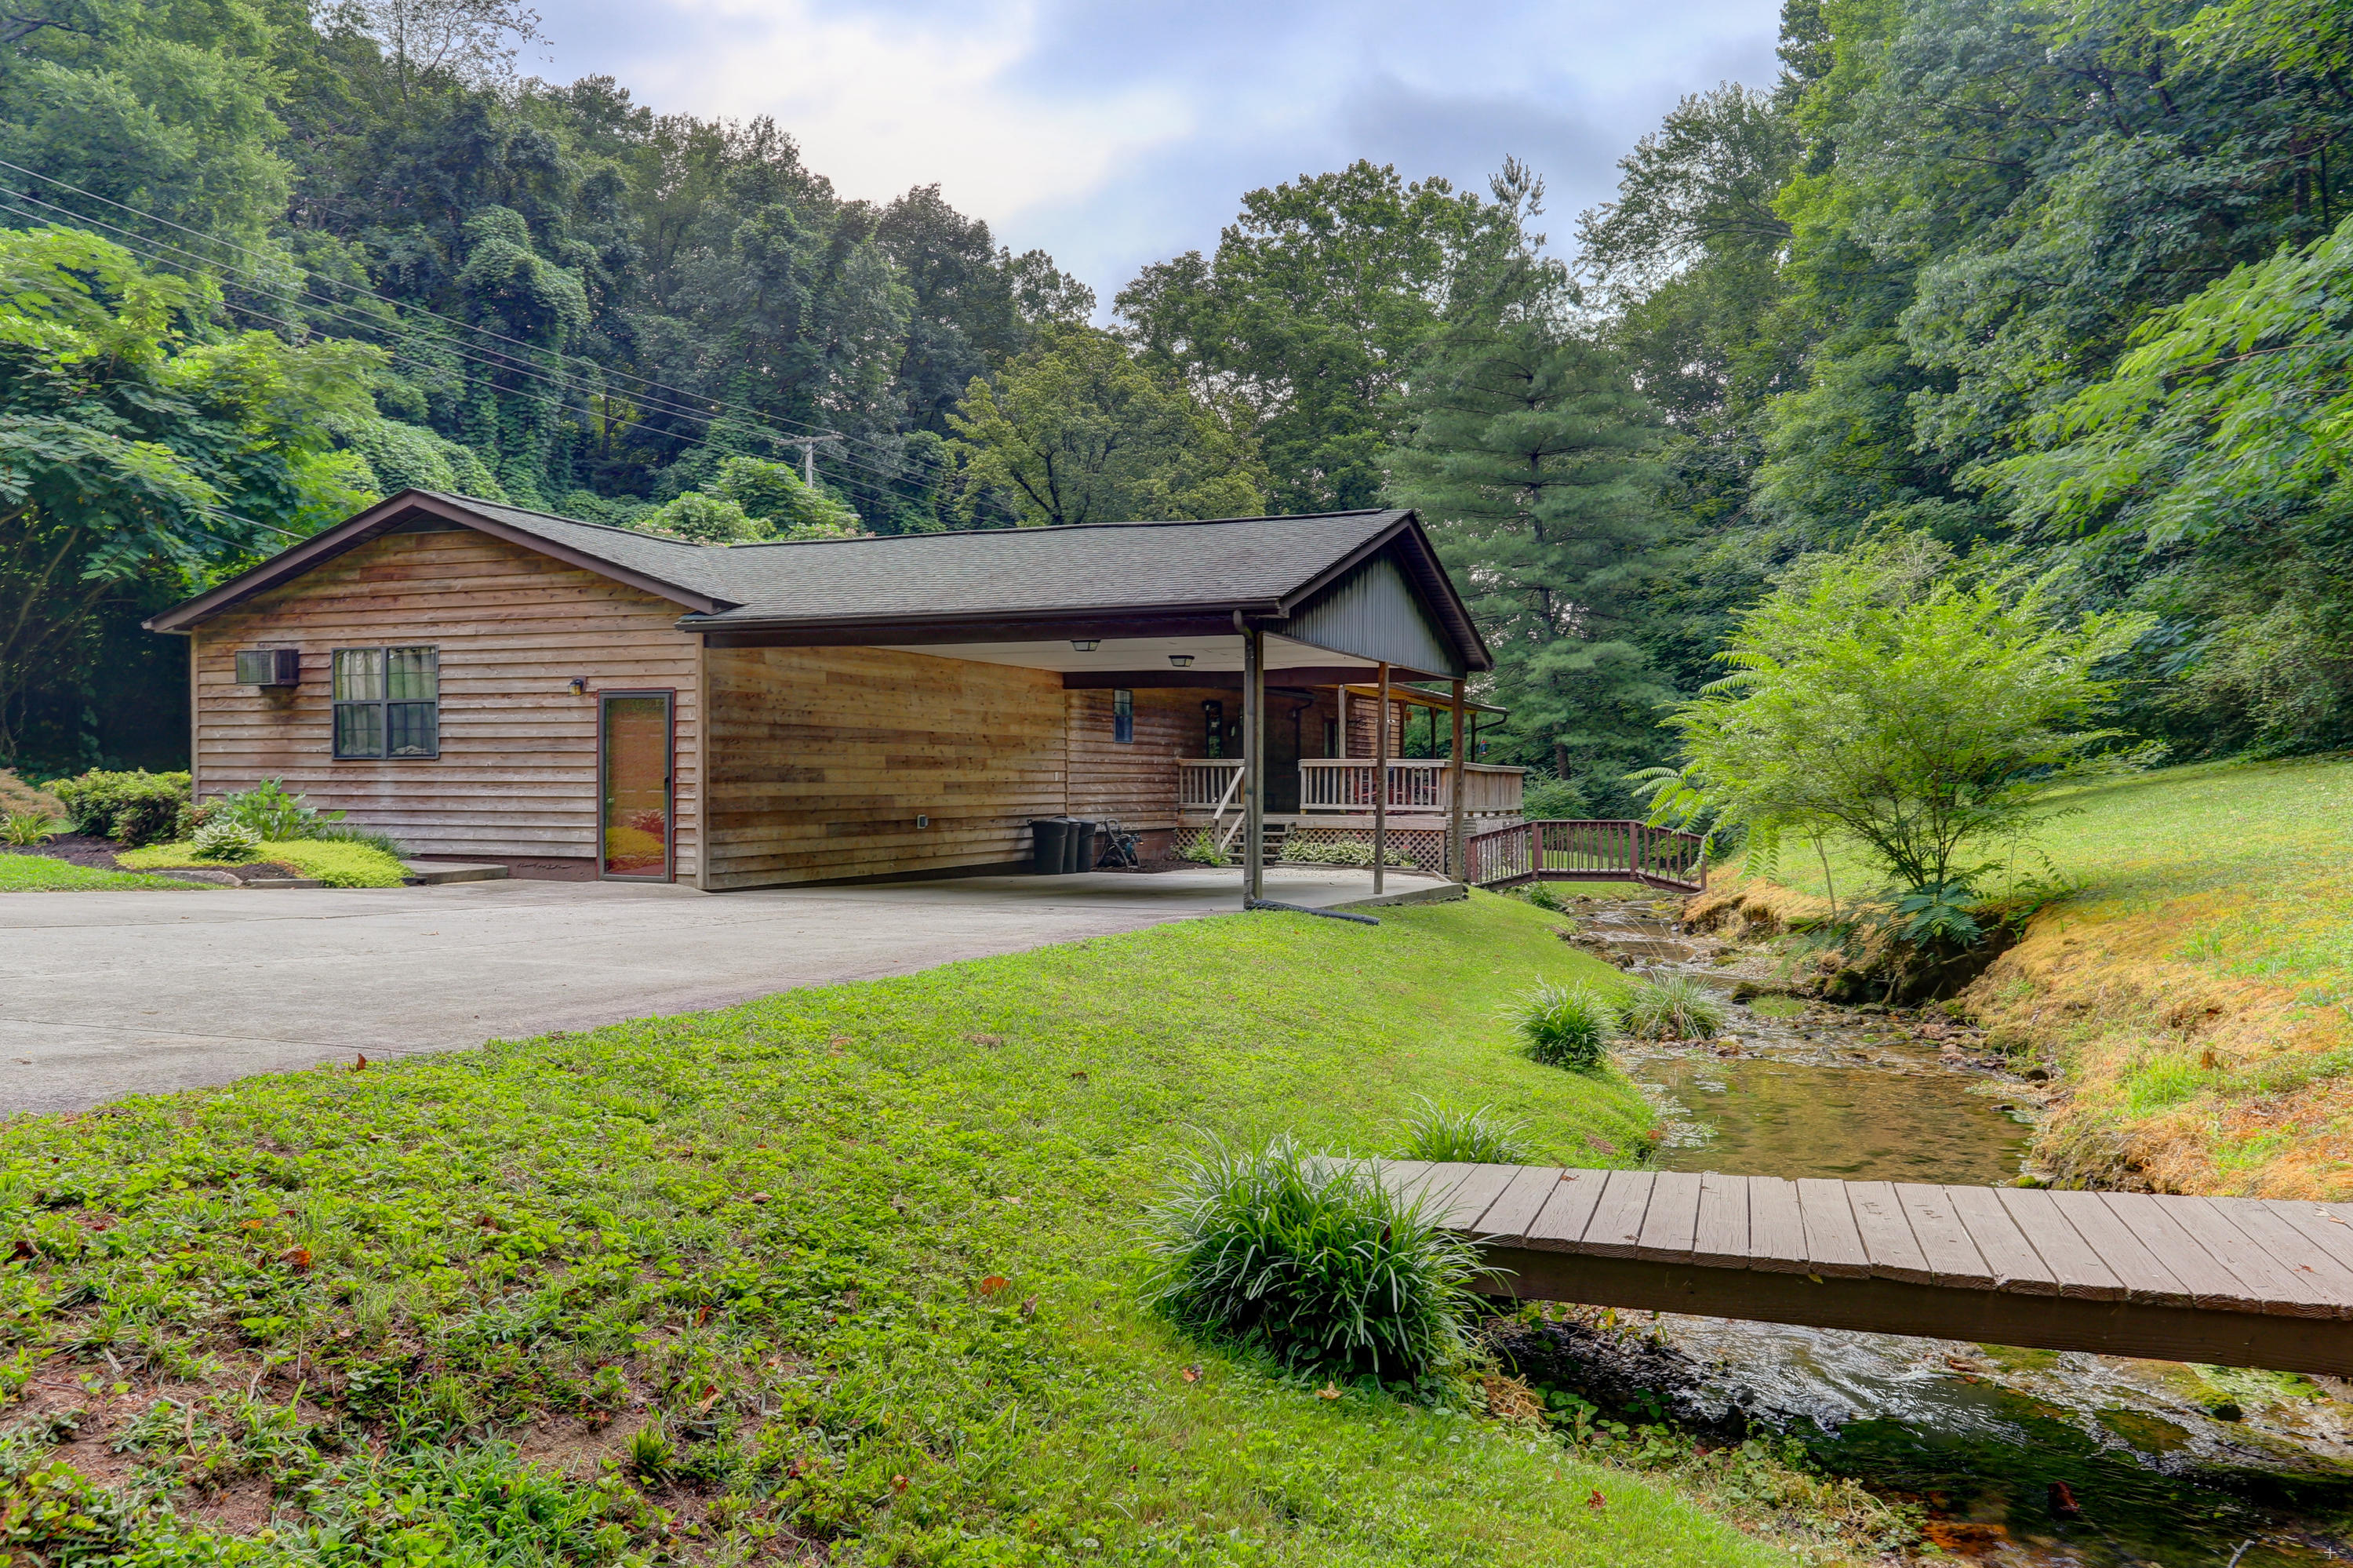 20190715174503214771000000-o Clinton anderson county homes for sale